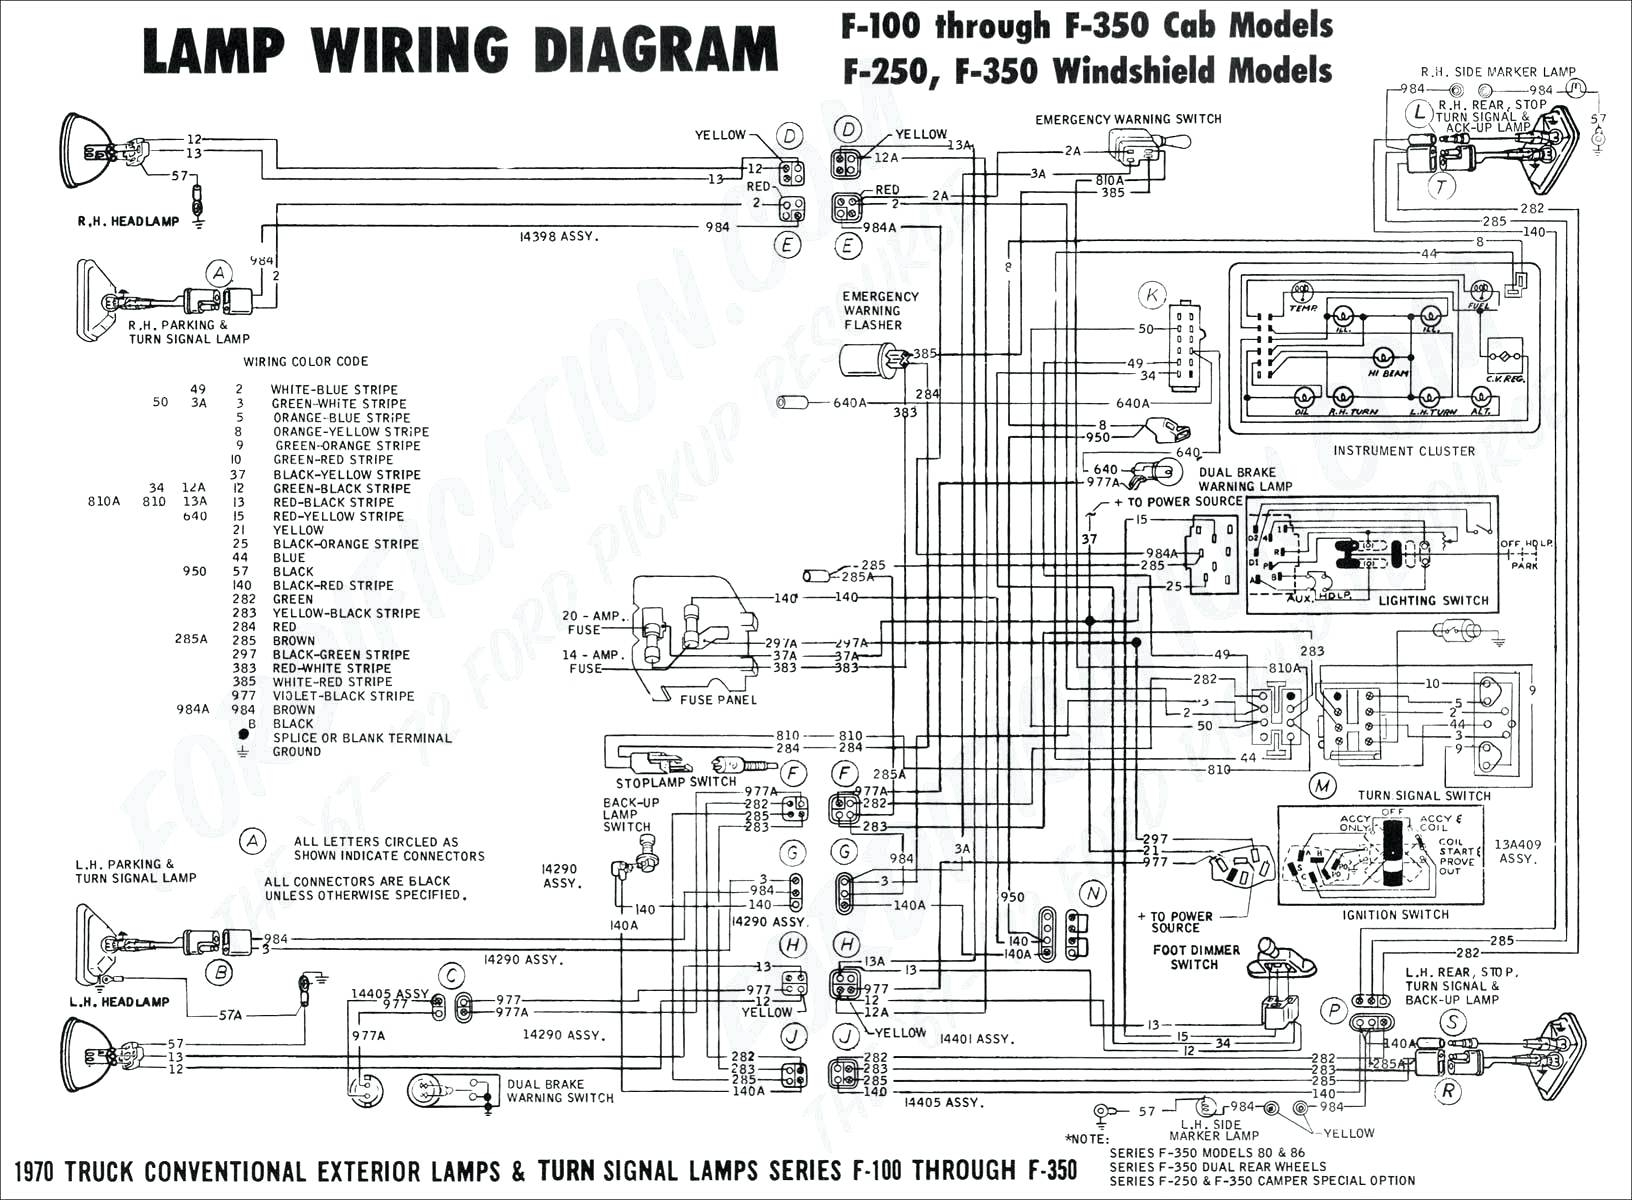 2006 ford f350 wiring diagram    ford    f250 trailer    wiring    harness    diagram    free    wiring       diagram        ford    f250 trailer    wiring    harness    diagram    free    wiring       diagram